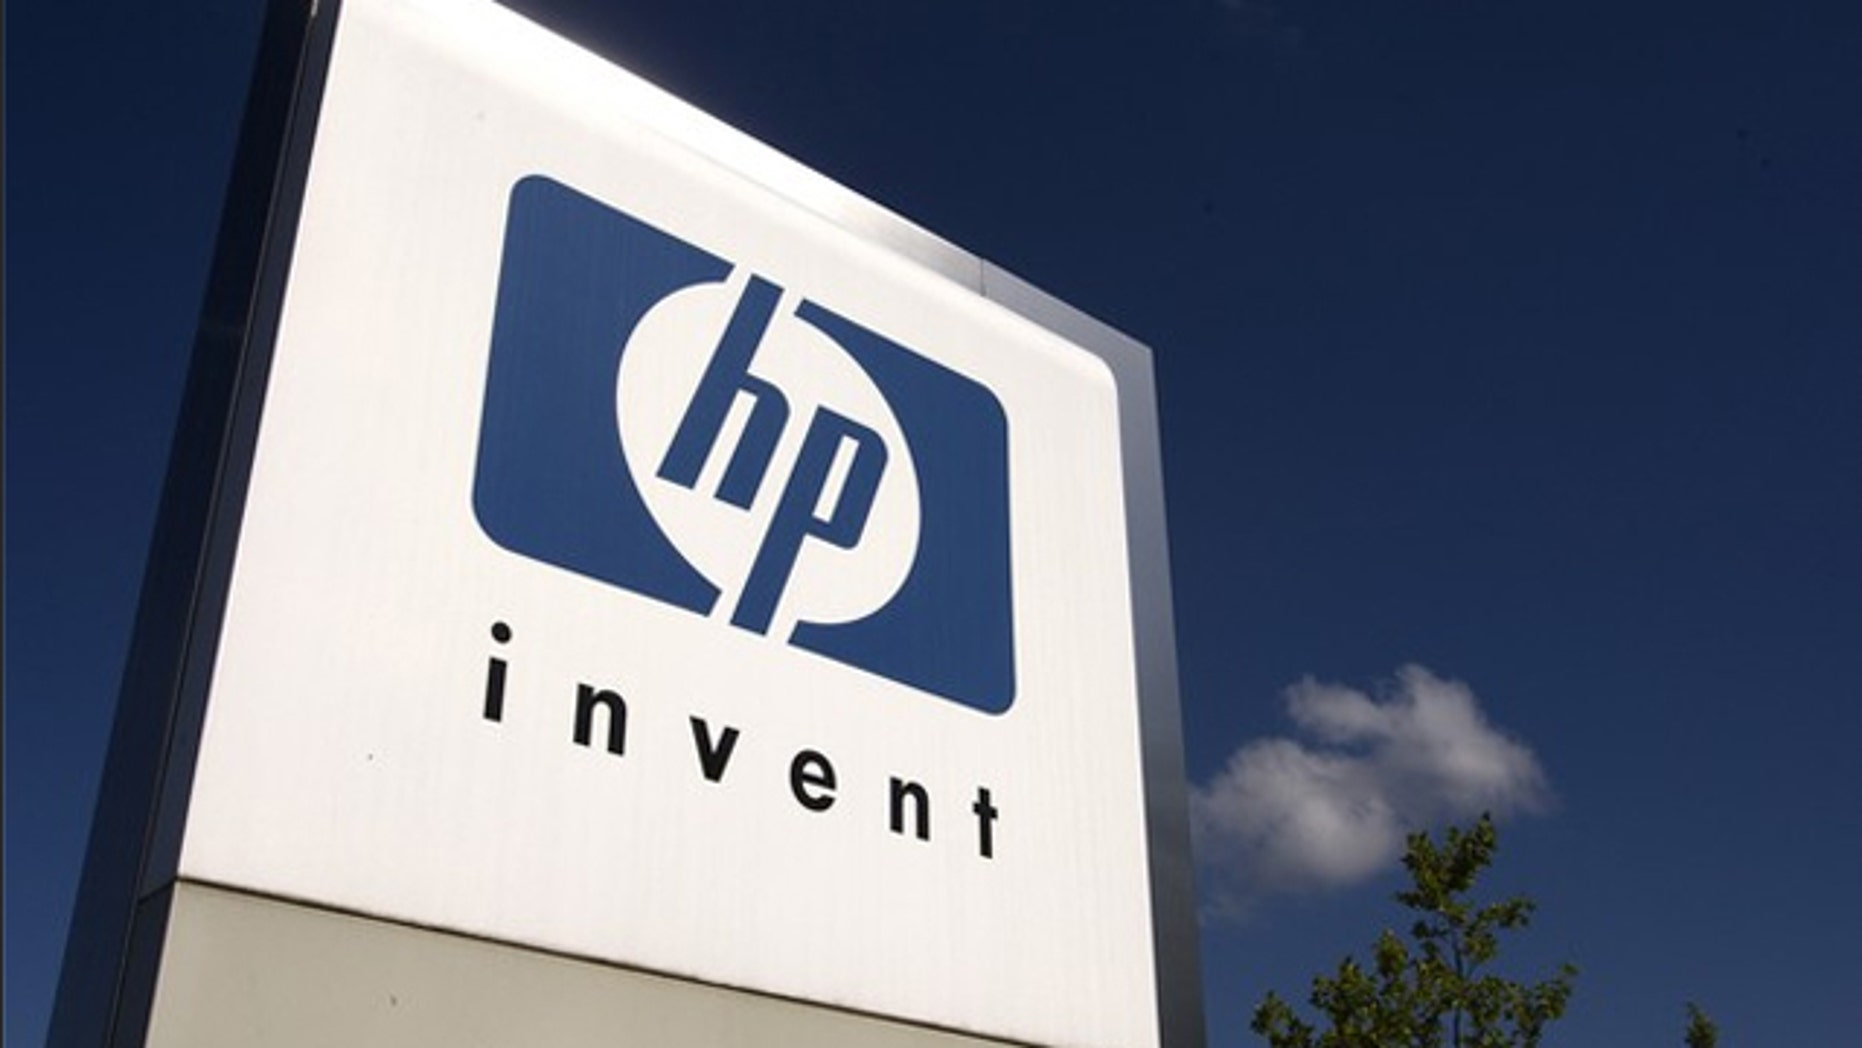 Columbia researcher shows how an HP printer could be hacked and potentially set on fire.